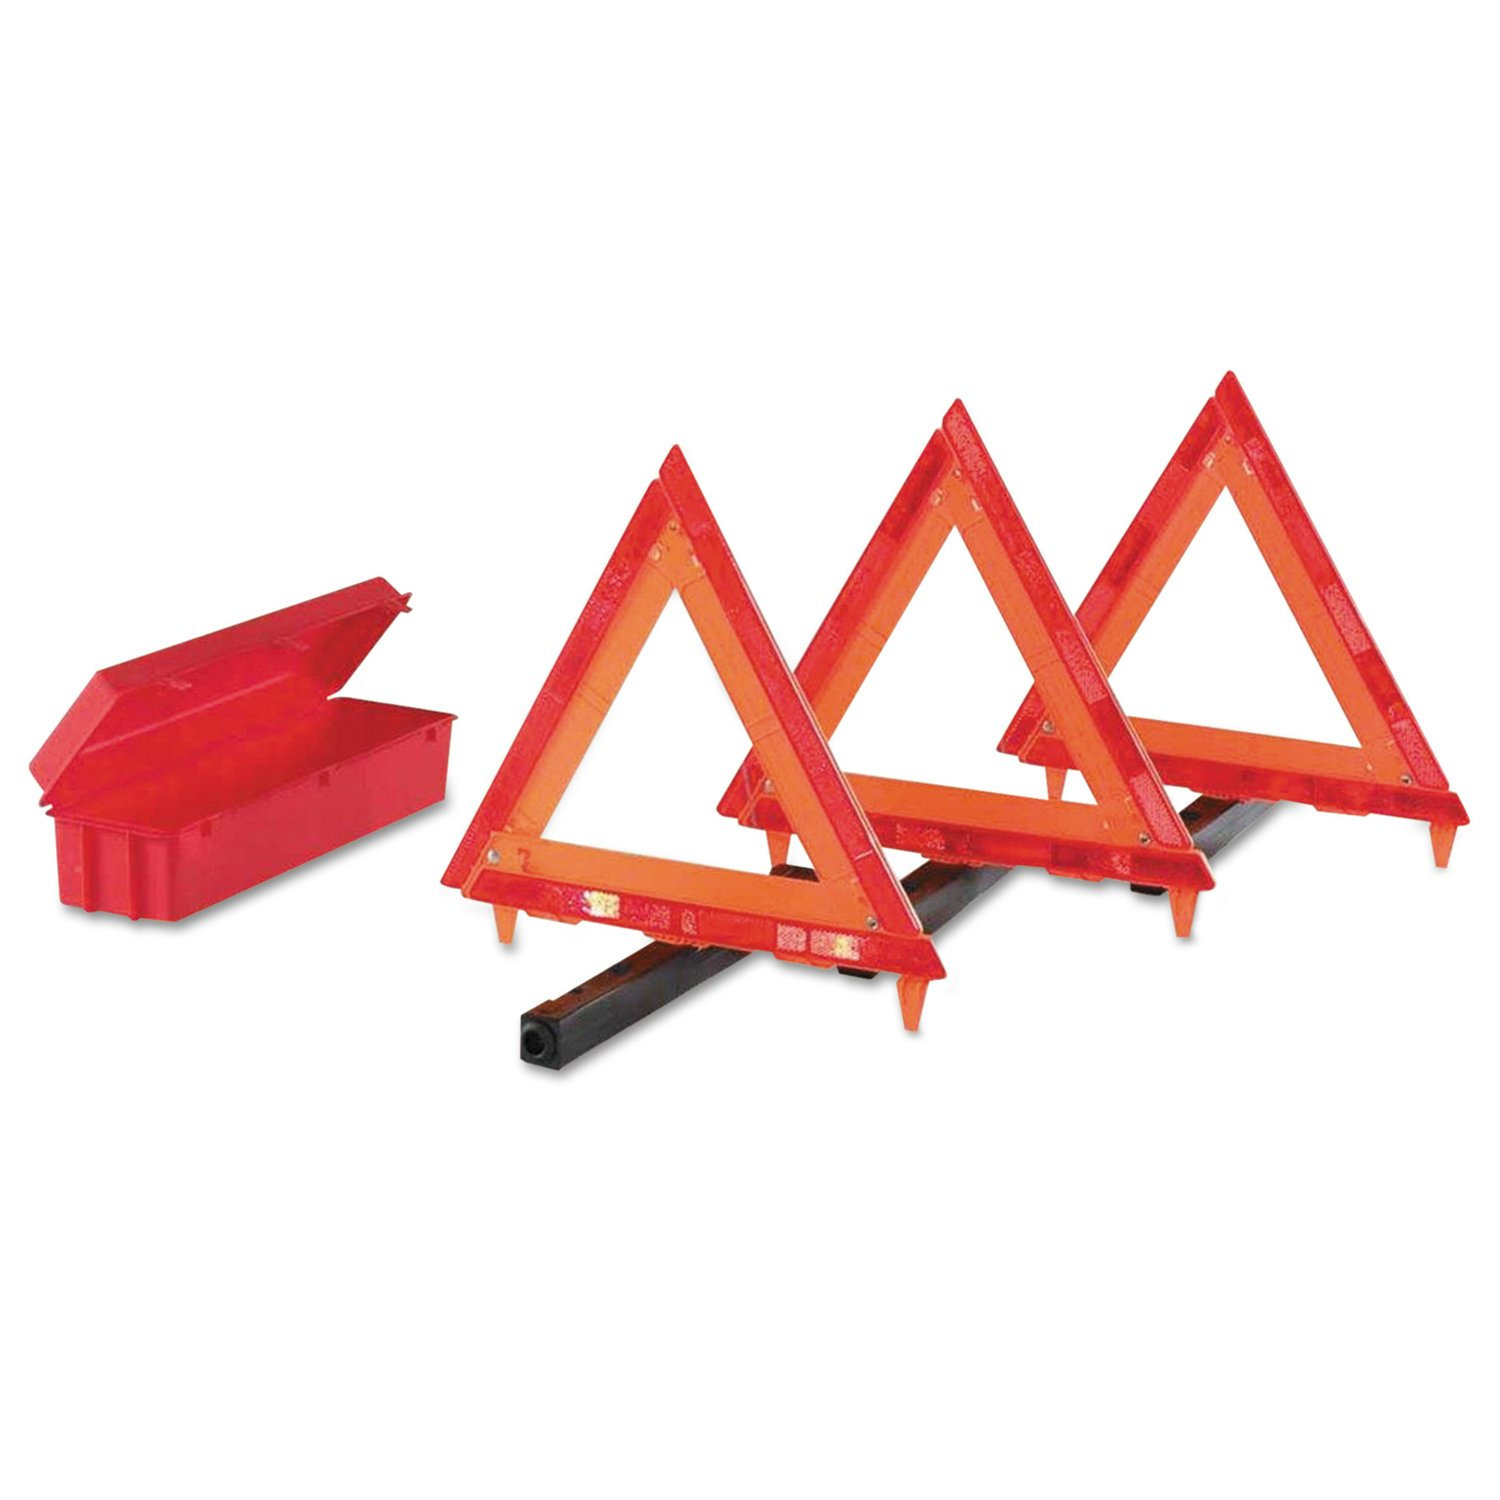 Cortina Safety Products 95-03-009 Three Triangles in Living Hinge Box with 1 Pack by Cortina Safety